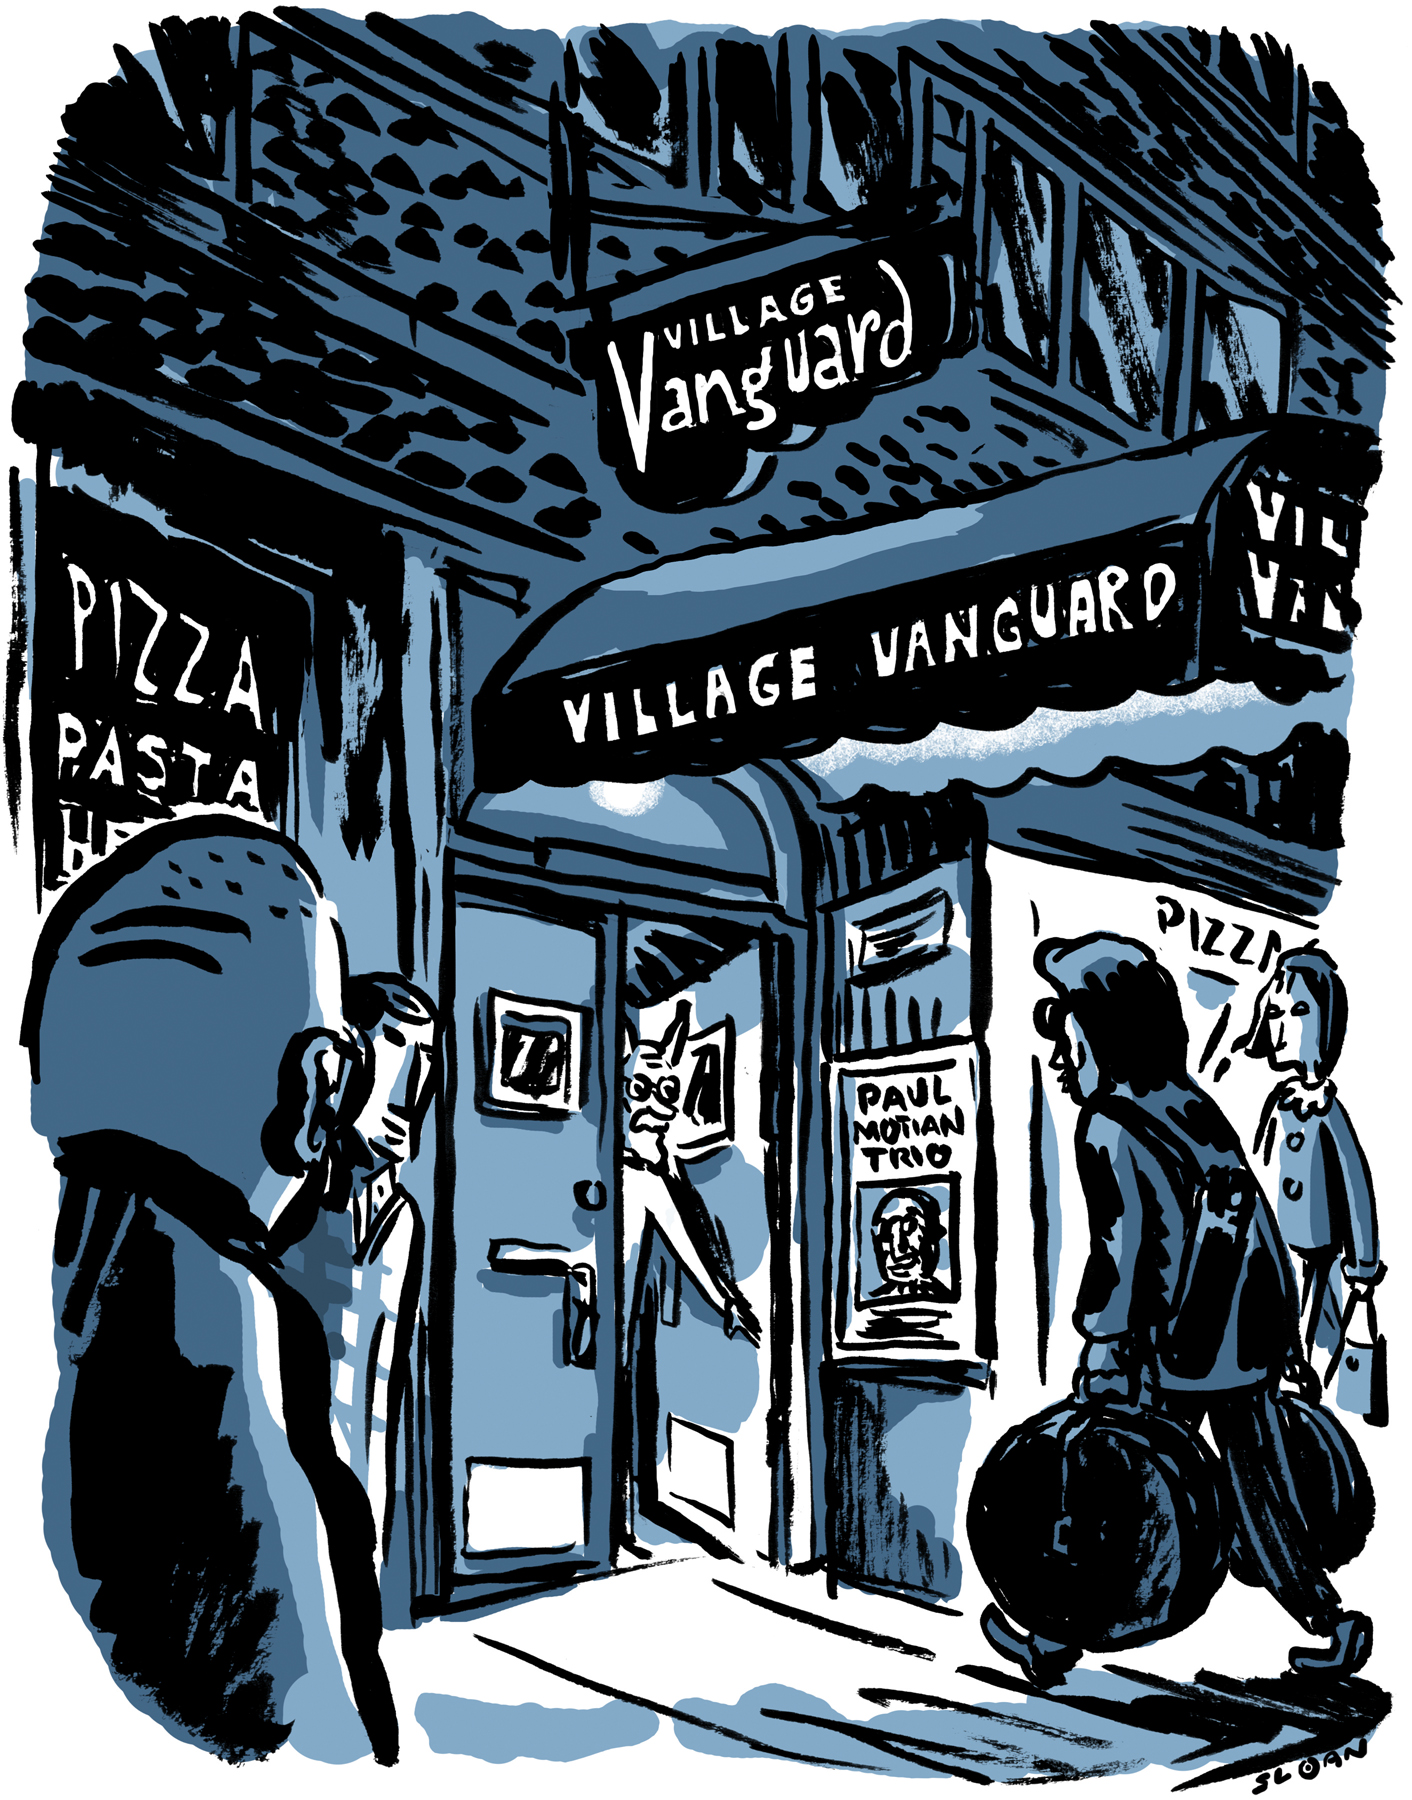 Paul Motian arriving at the Village Vanguard, NYC.